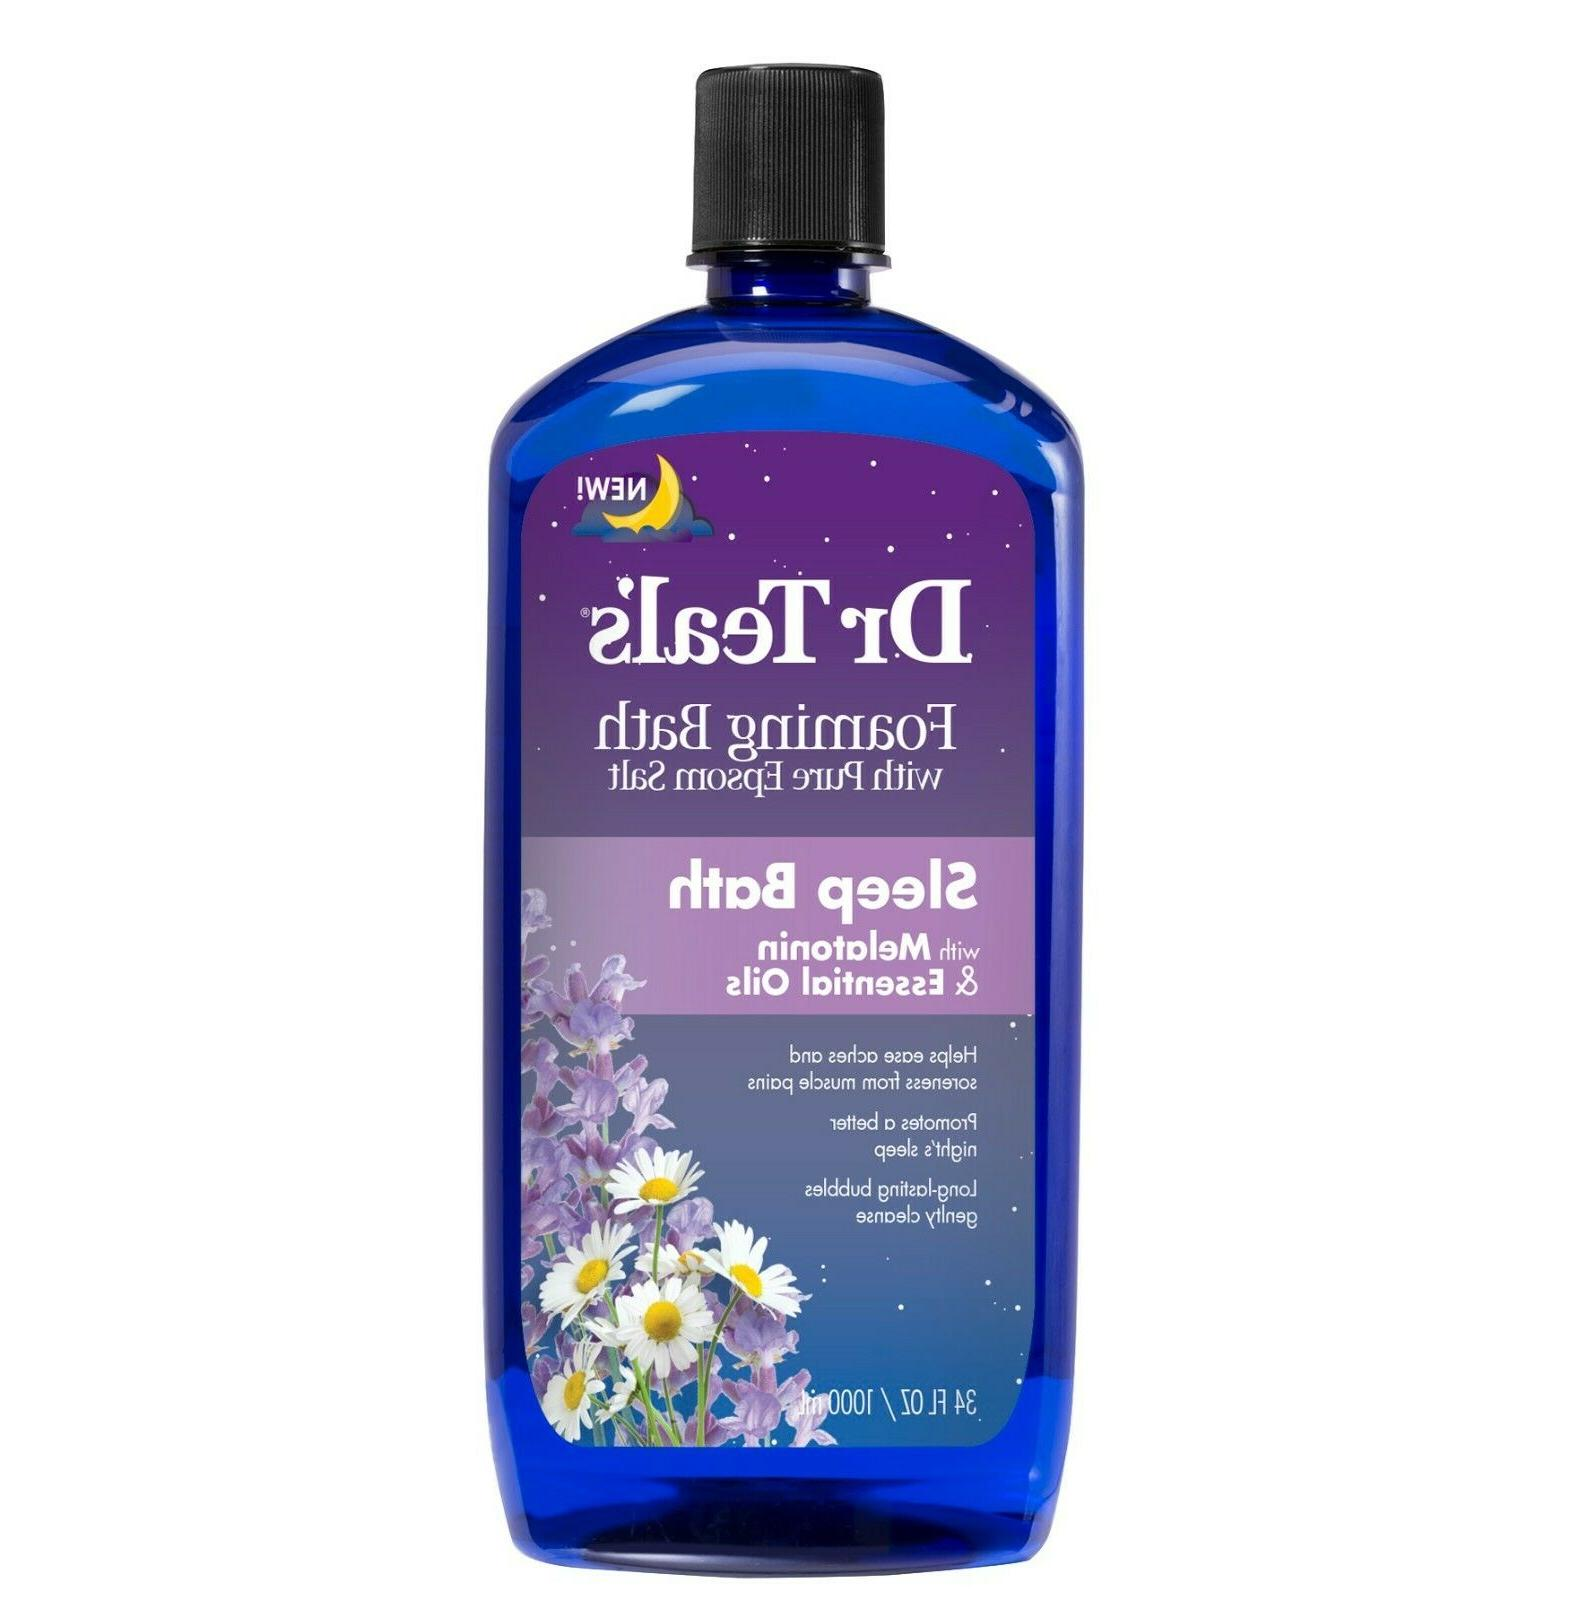 Dr Teal's Foaming Bath with Pure Epsom Salt, Soothe & Slee